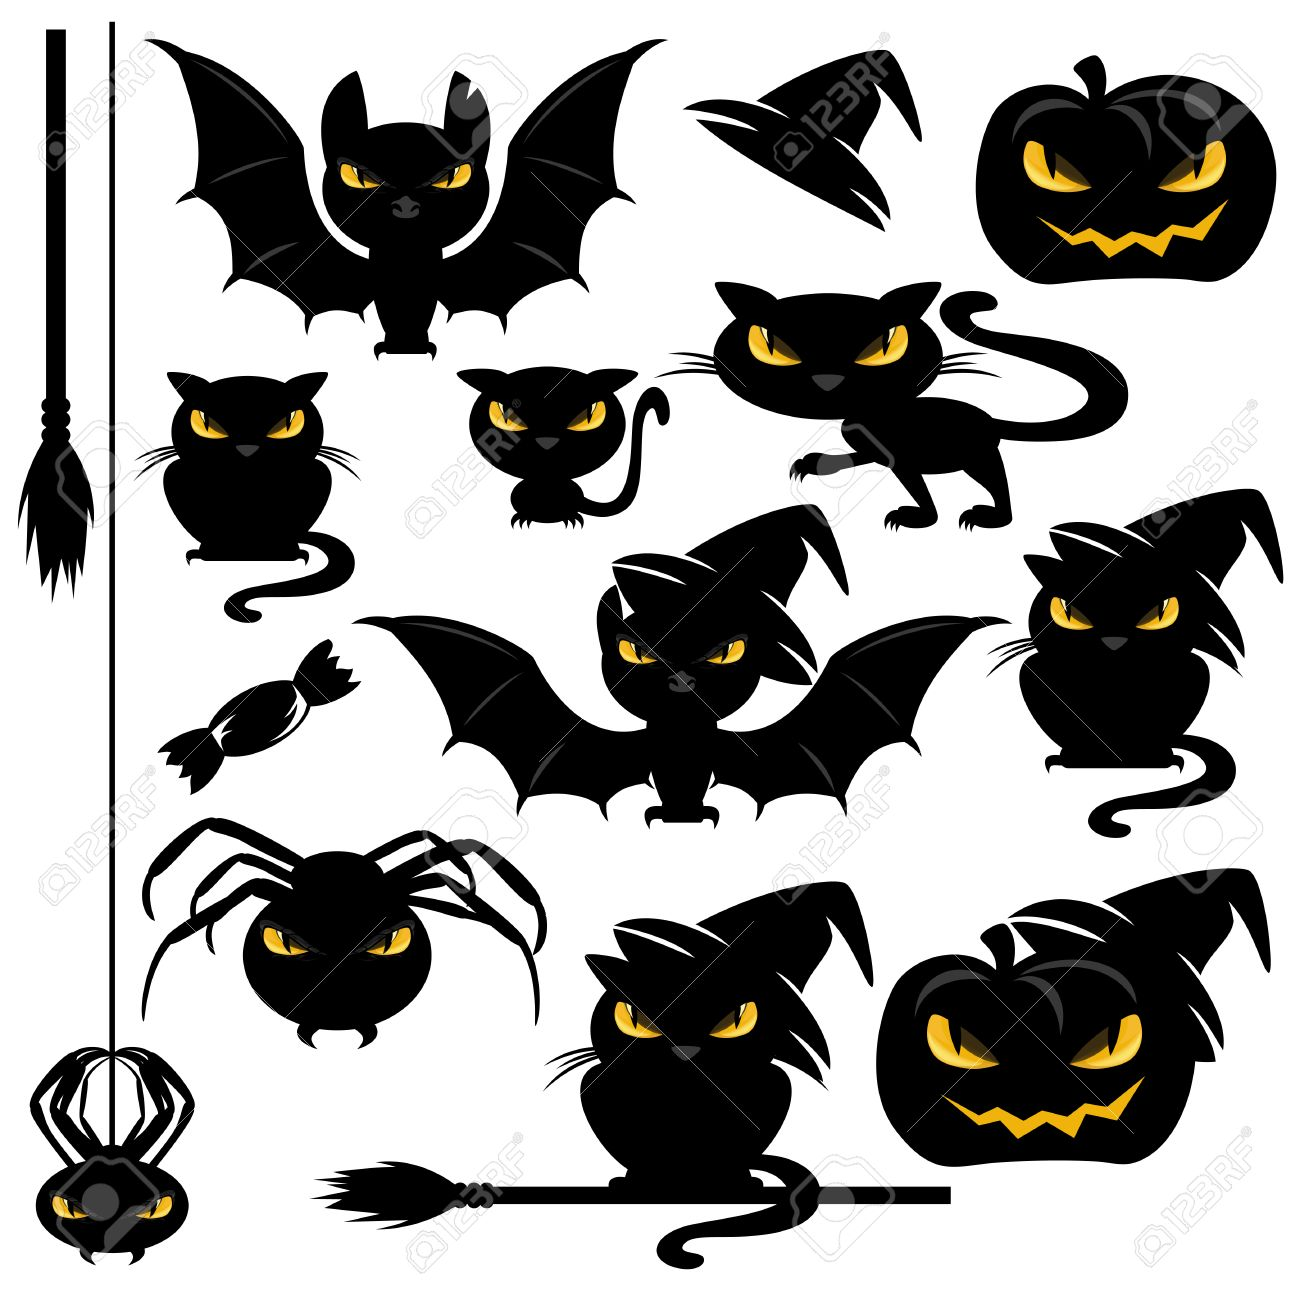 halloween monster design elements set funny vector animals rh 123rf com Disney Halloween Clip Art Disney Halloween Clip Art